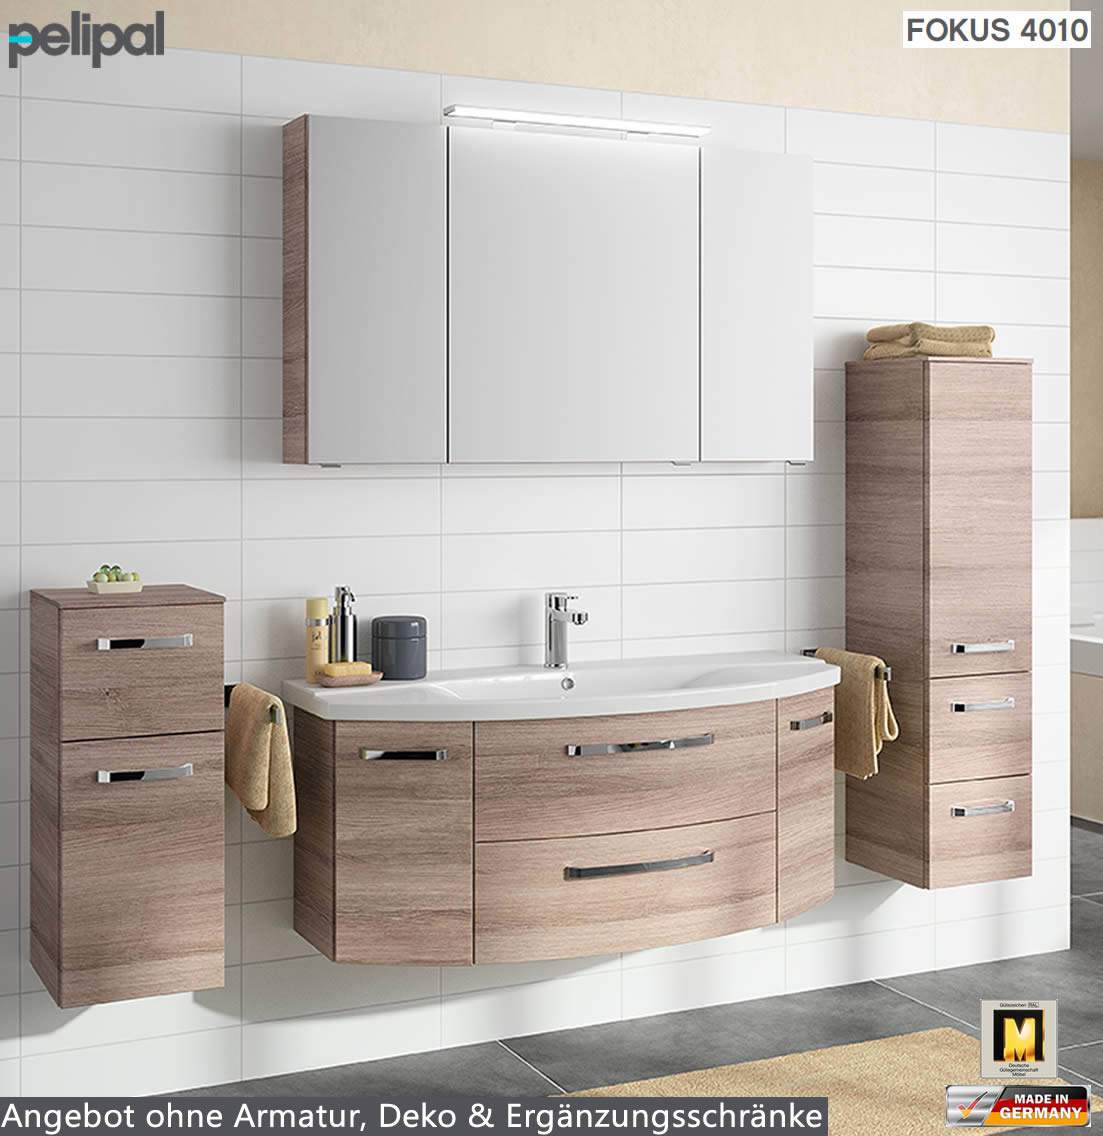 pelipal fokus 4010 badm bel set 3tlg 120 cm mit keramik waschtisch v1 1 impuls home. Black Bedroom Furniture Sets. Home Design Ideas